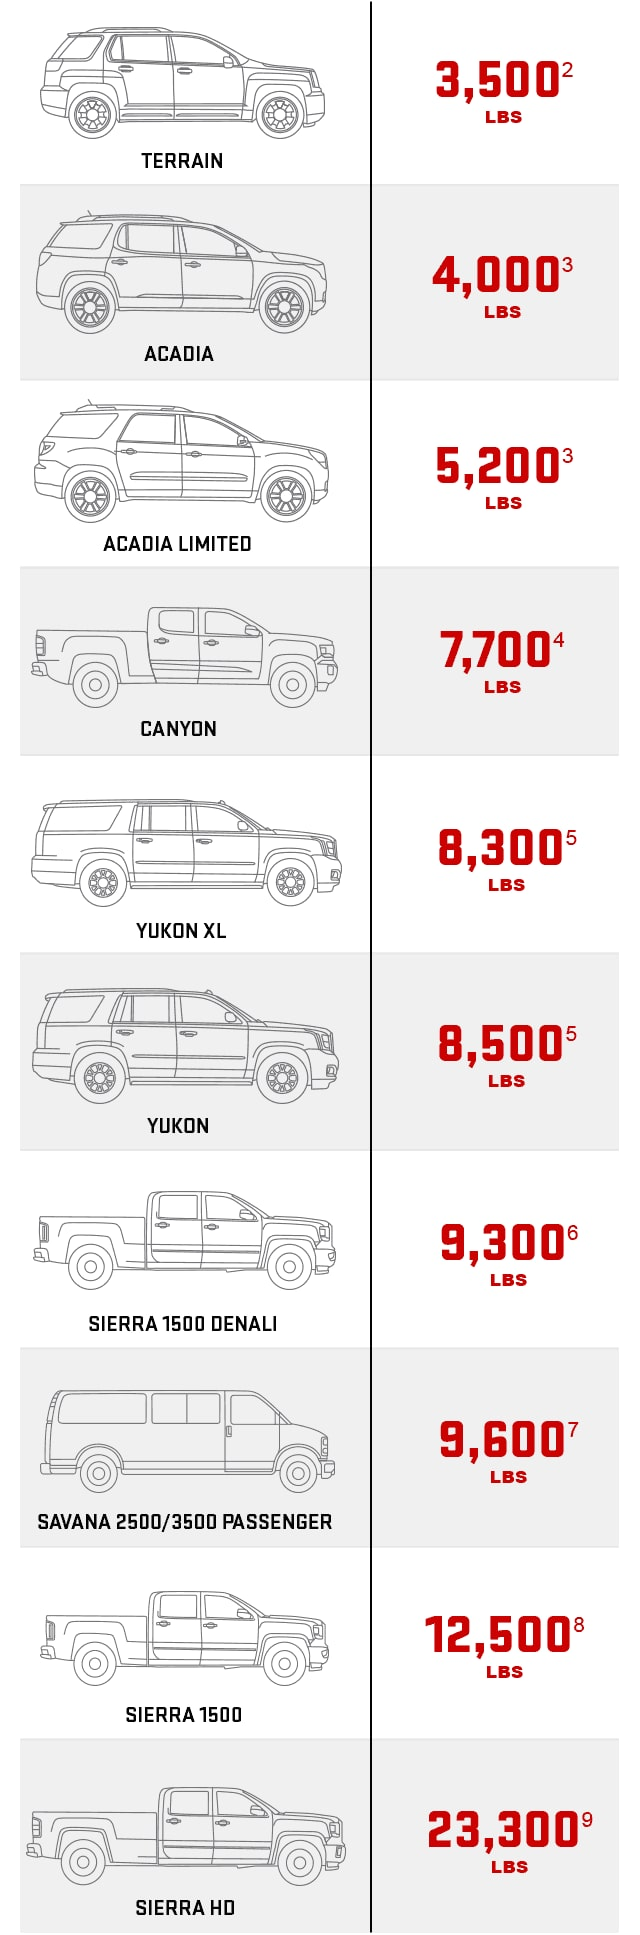 Towing Capacity Chart | Vehicle Towing Capacity | GMC